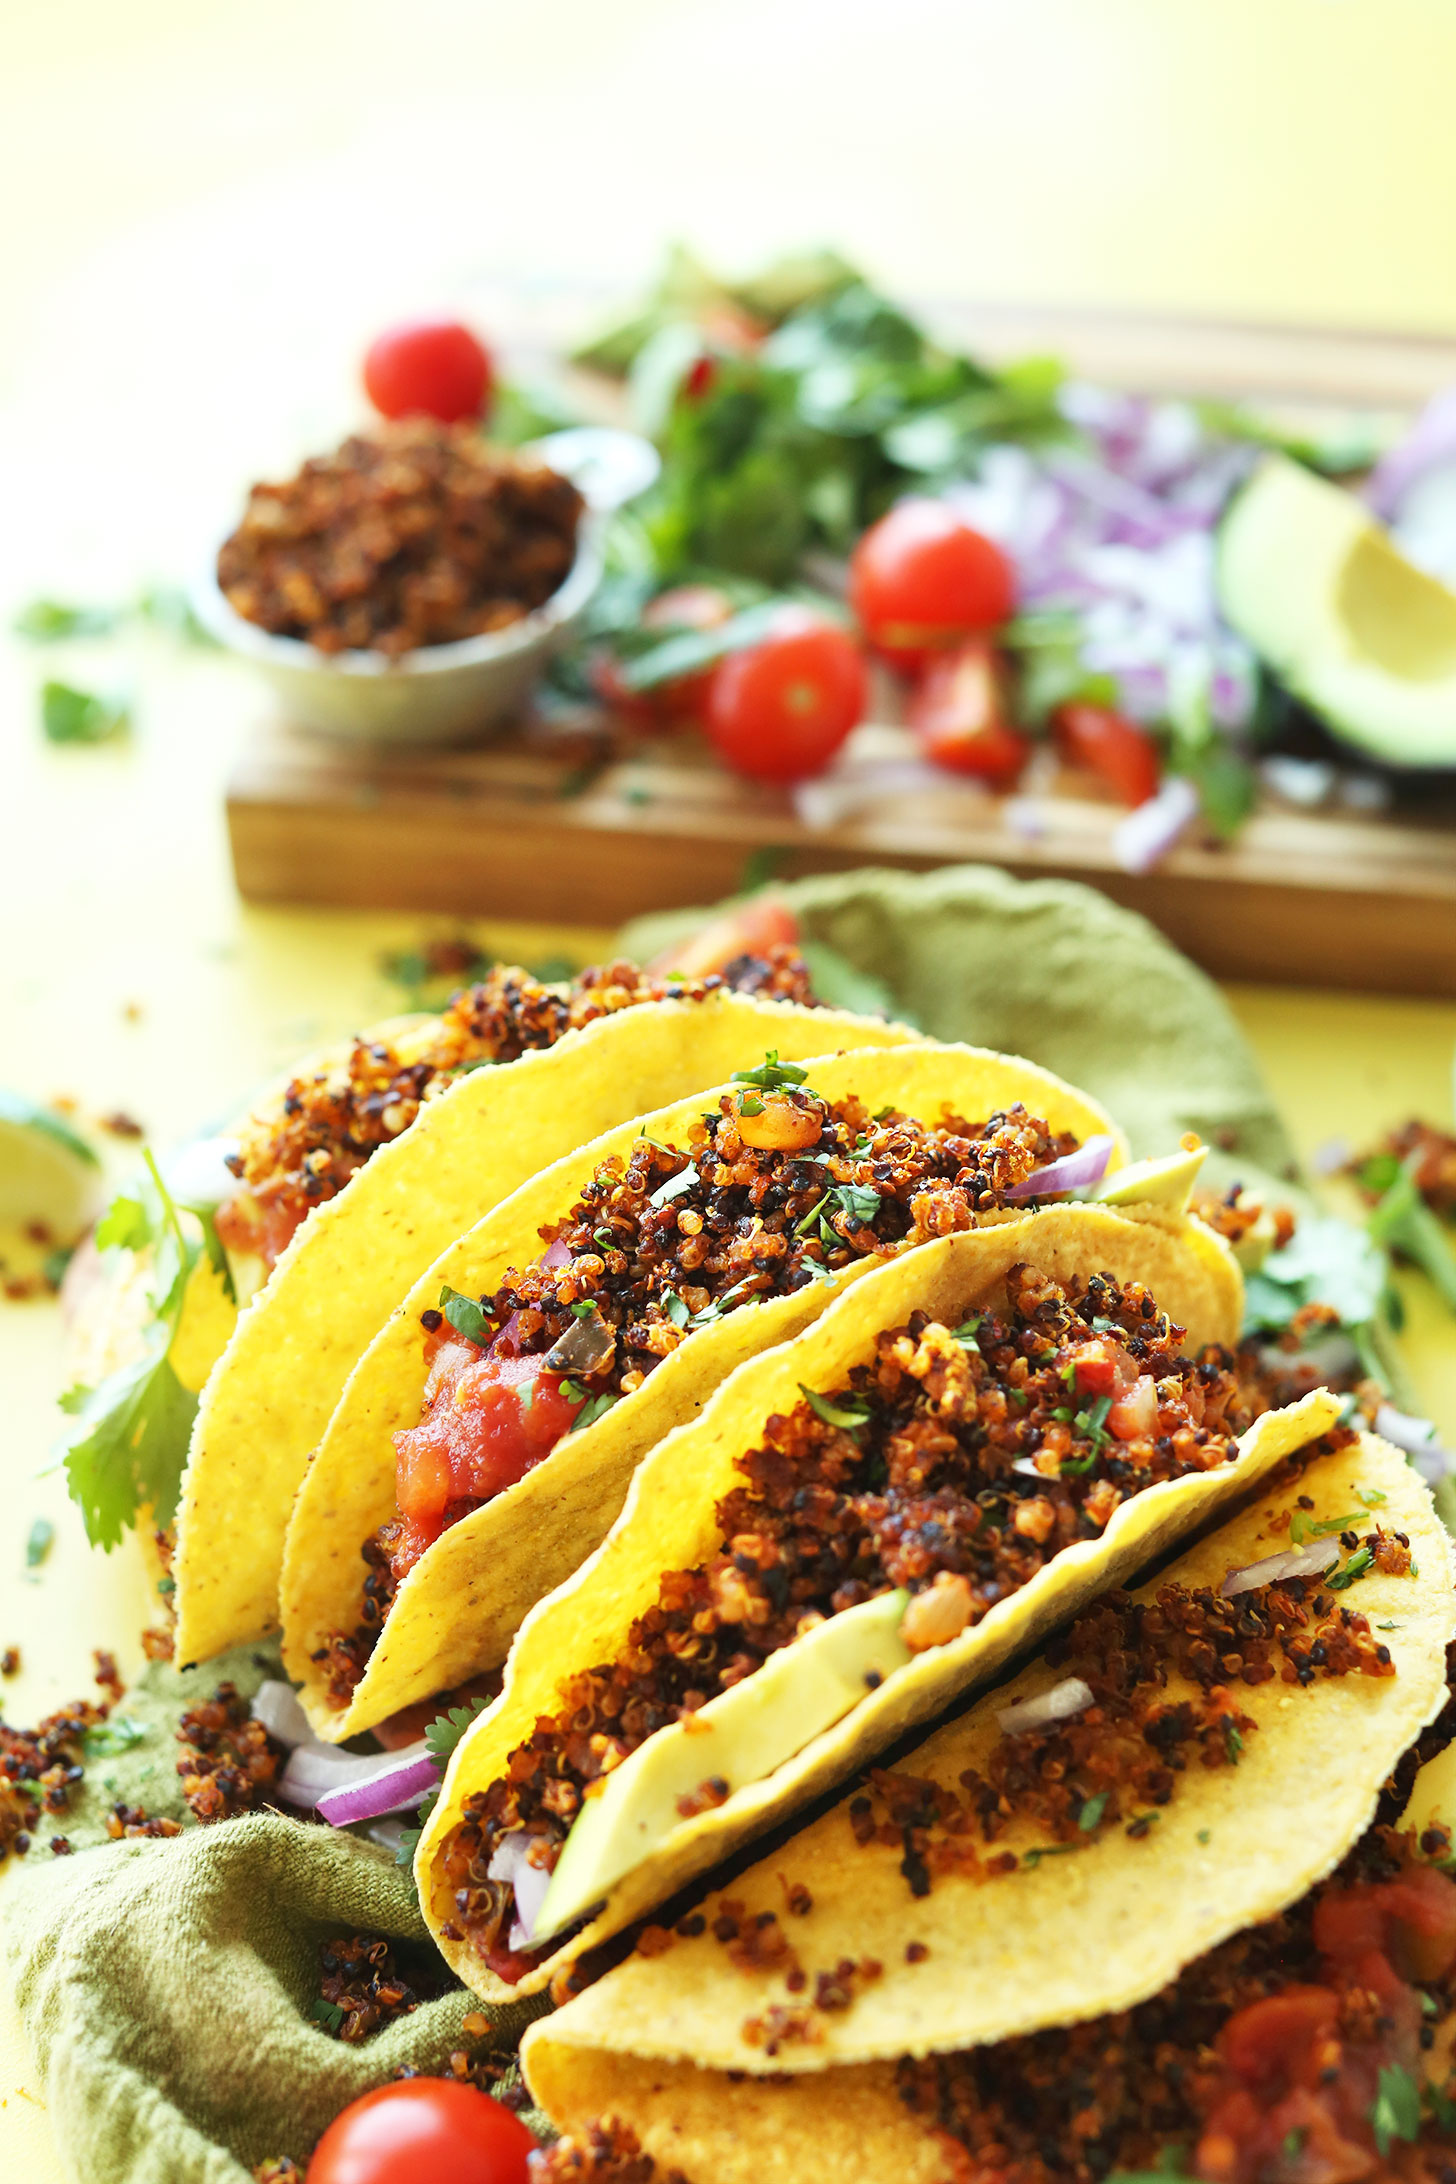 Try Our Delicious Tacos With A Twist Made With Cholula Hot Sauce!Flavor First · Mexican Heritage · Uncap Real Flavor · Traditional RecipeTypes: Original, Green Pepper, Sweet Habanero, Chipotle, Chili Lime, Chili Garlic.